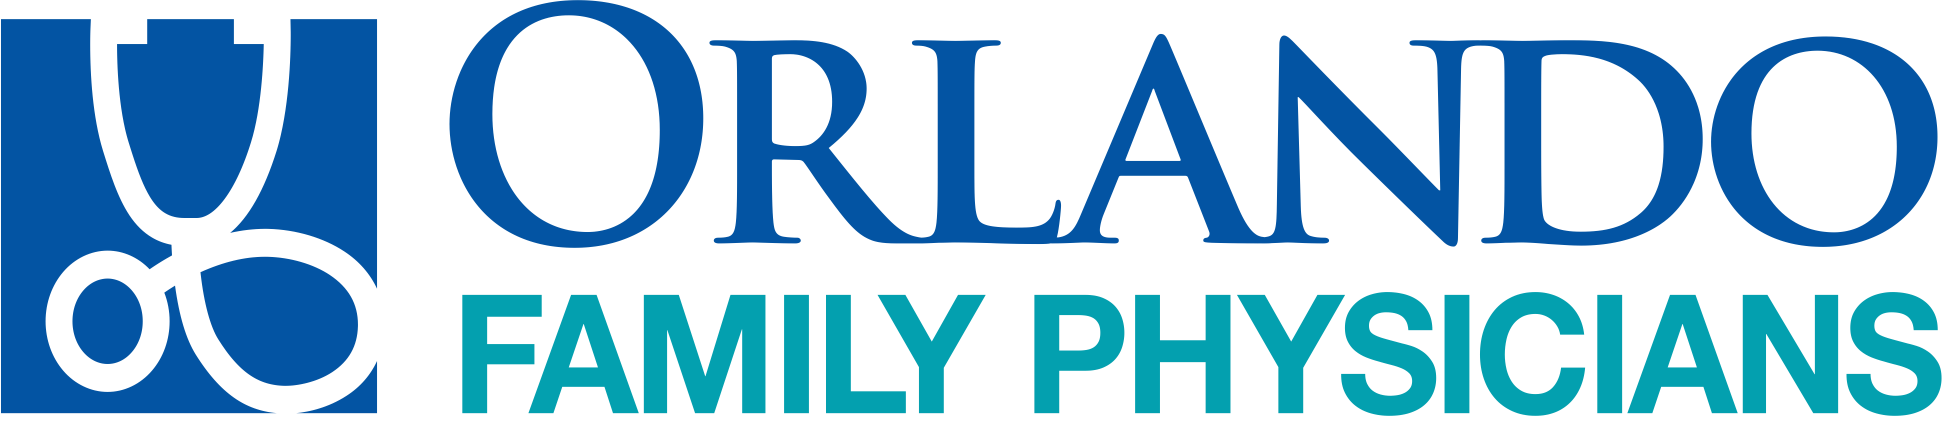 https://wellbeingforum.guidewellinnovation.com/wp-content/uploads/2019/08/1b_Orlando-Family-Physicians-1.1.png